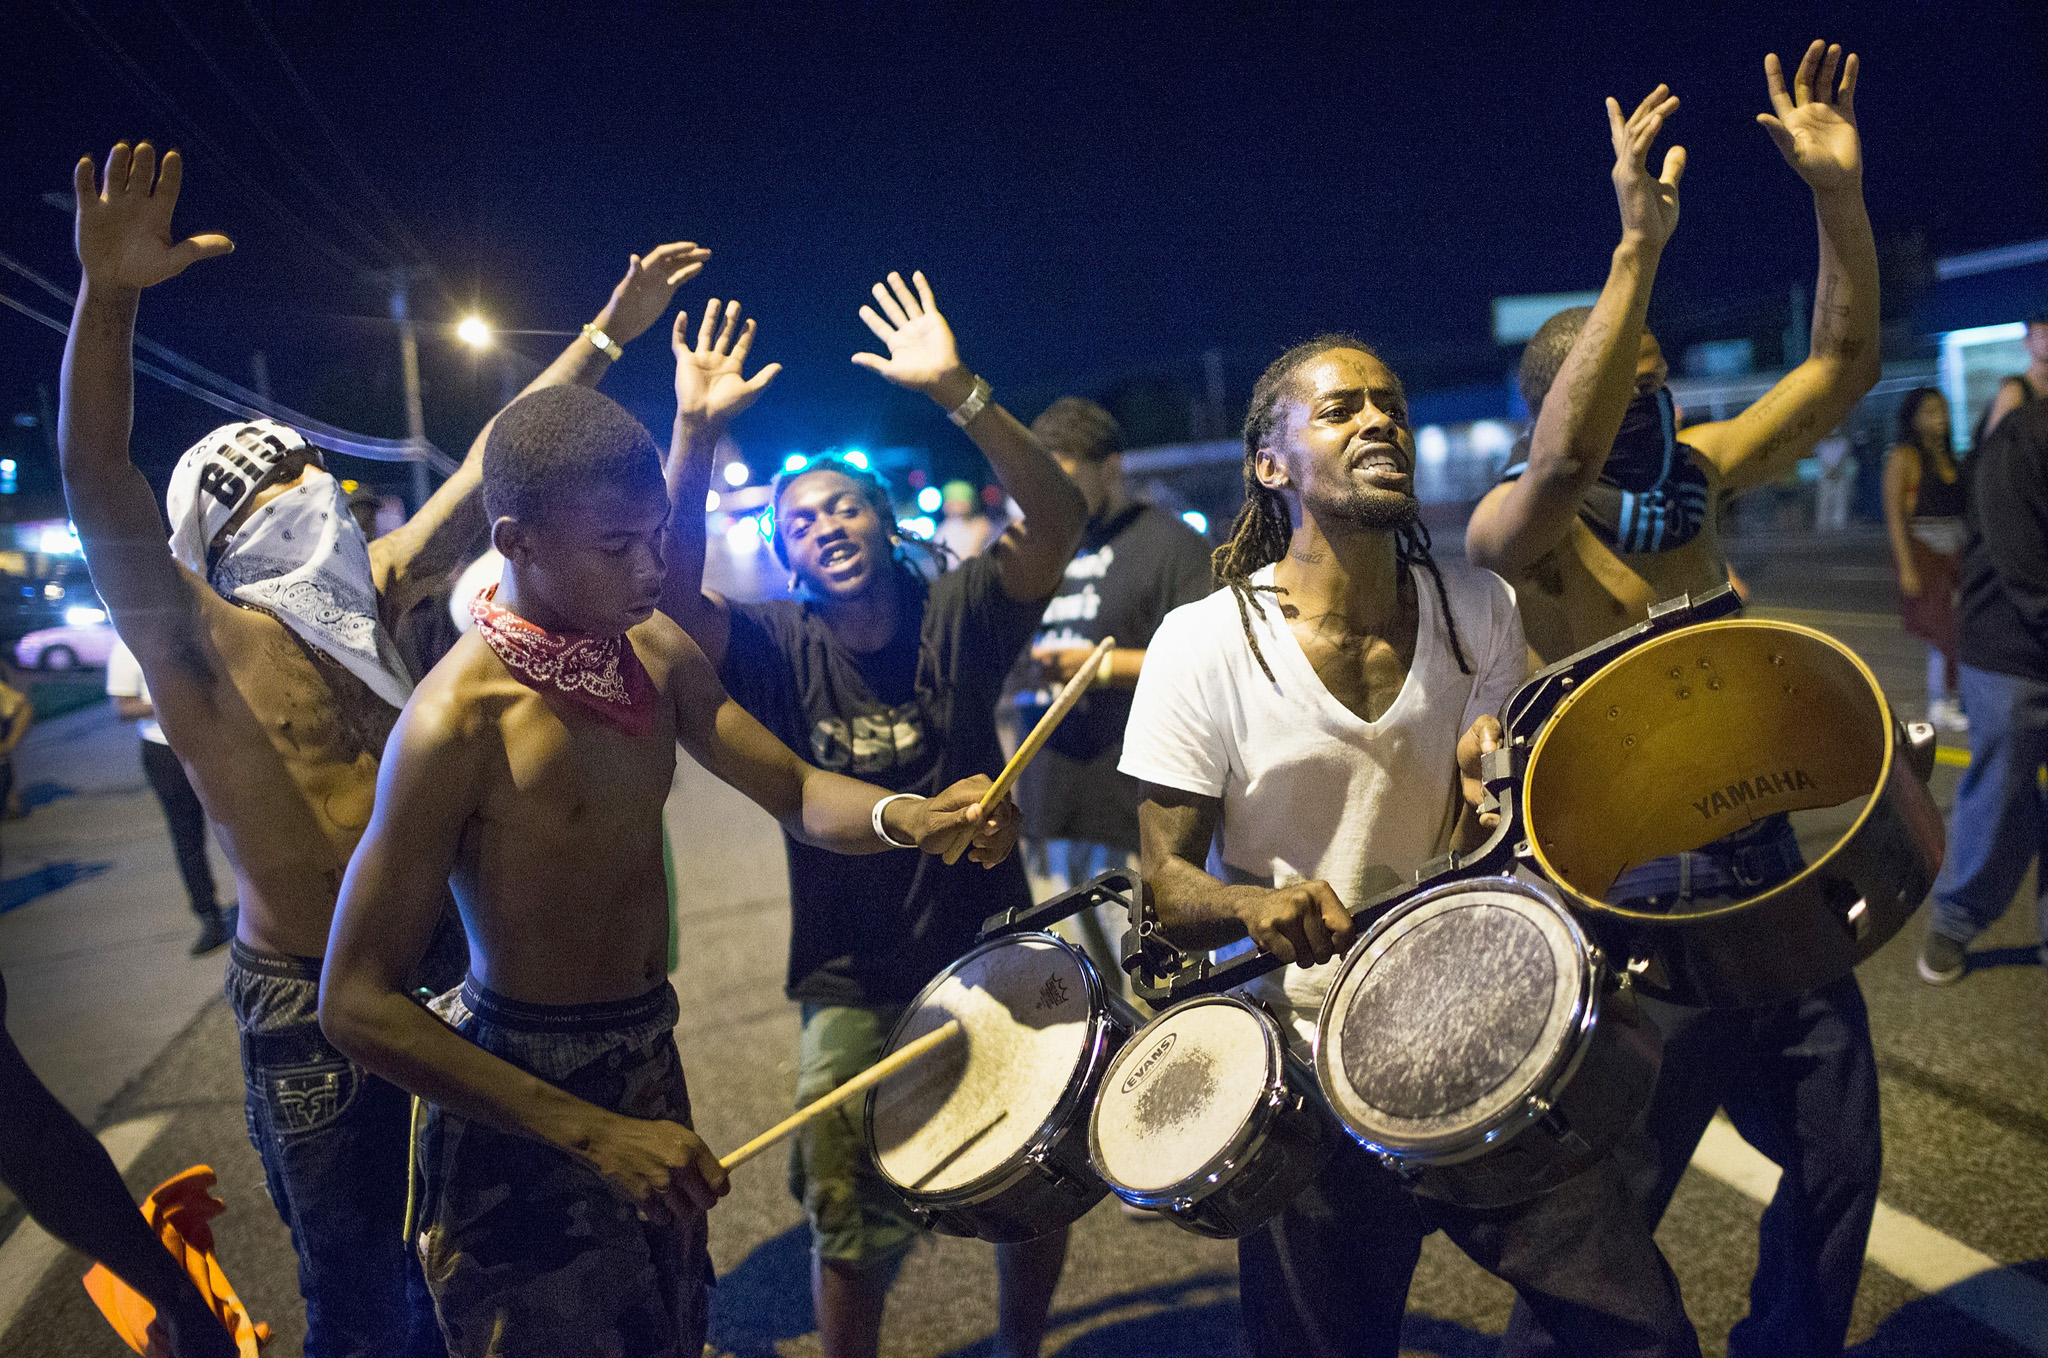 Ferguson Tense After Shootout On Anniversary Of Michael Brown's Death...FERGUSON, MO - AUGUST 10:  Demonstrators, marking the one-year anniversary of the shooting of Michael Brown, protest along West Florrisant Street on August 10, 2015 in Ferguson, Missouri. Mare than 100 people were arrested today during protests in Ferguson and the St. Louis area. Brown was shot and killed by a Ferguson police officer on August 9, 2014. His death sparked months of sometimes violent protests in Ferguson and drew nationwide focus on police treatment of black offenders.  (Photo by Scott Olson/Getty Images)